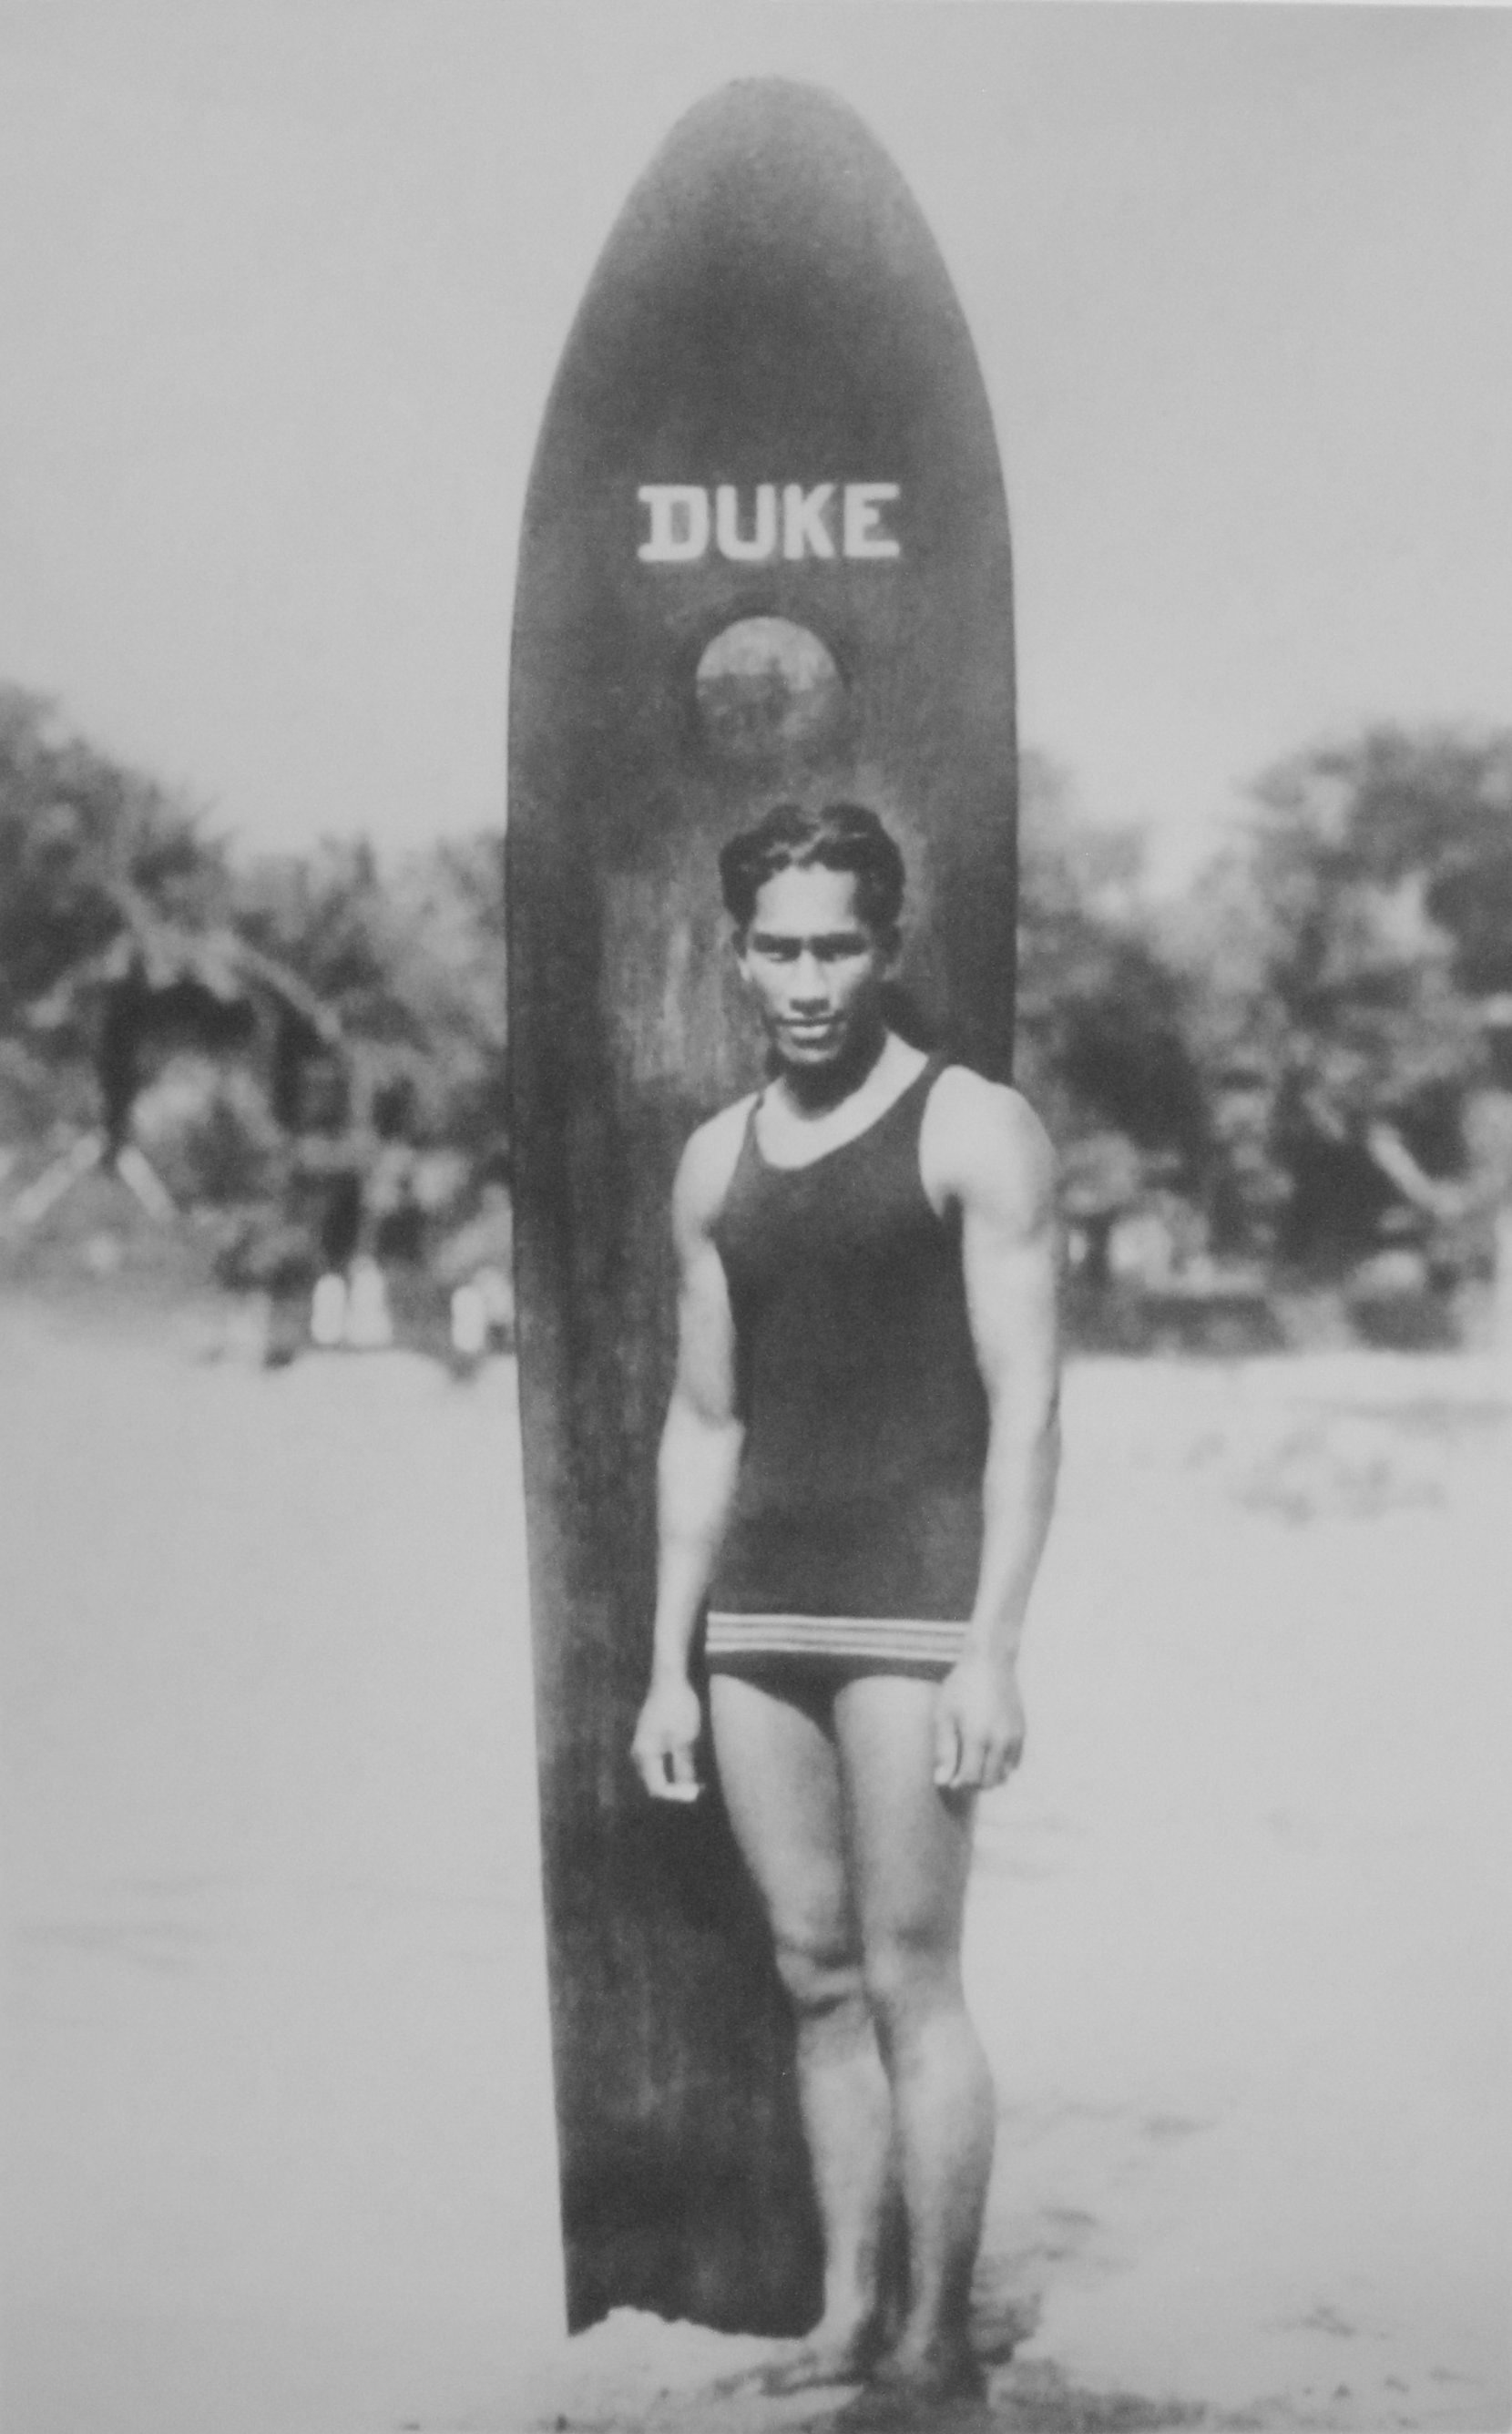 [Duke Kahanamoku] US Olympic gold medalist. Photographer unknown.